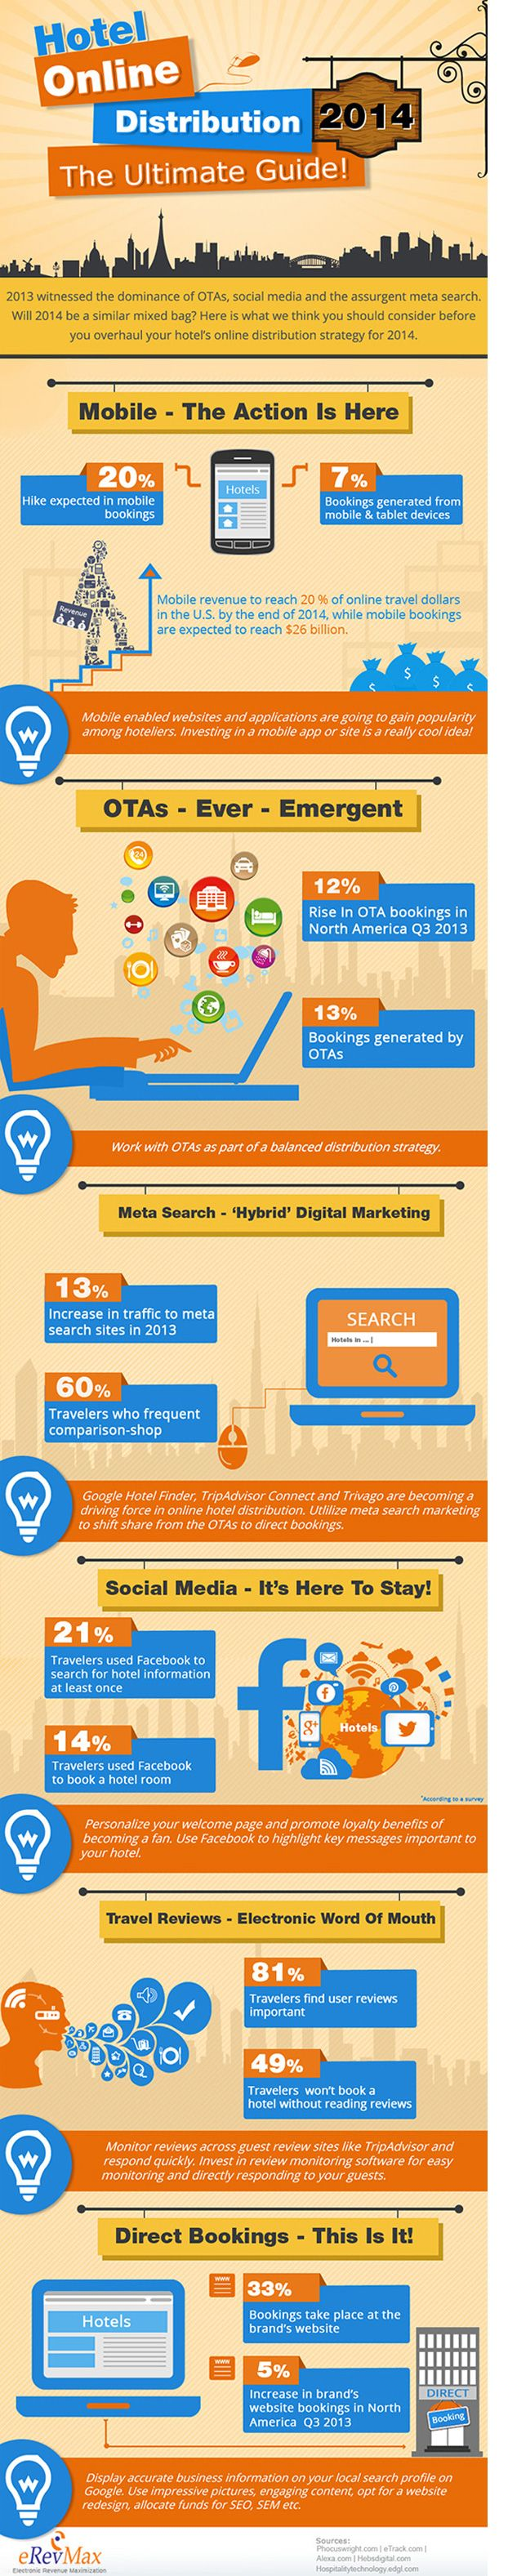 66 best interesting facts images on pinterest info graphics the digital marketing mix for hotels according to erevmax infographic fandeluxe Images